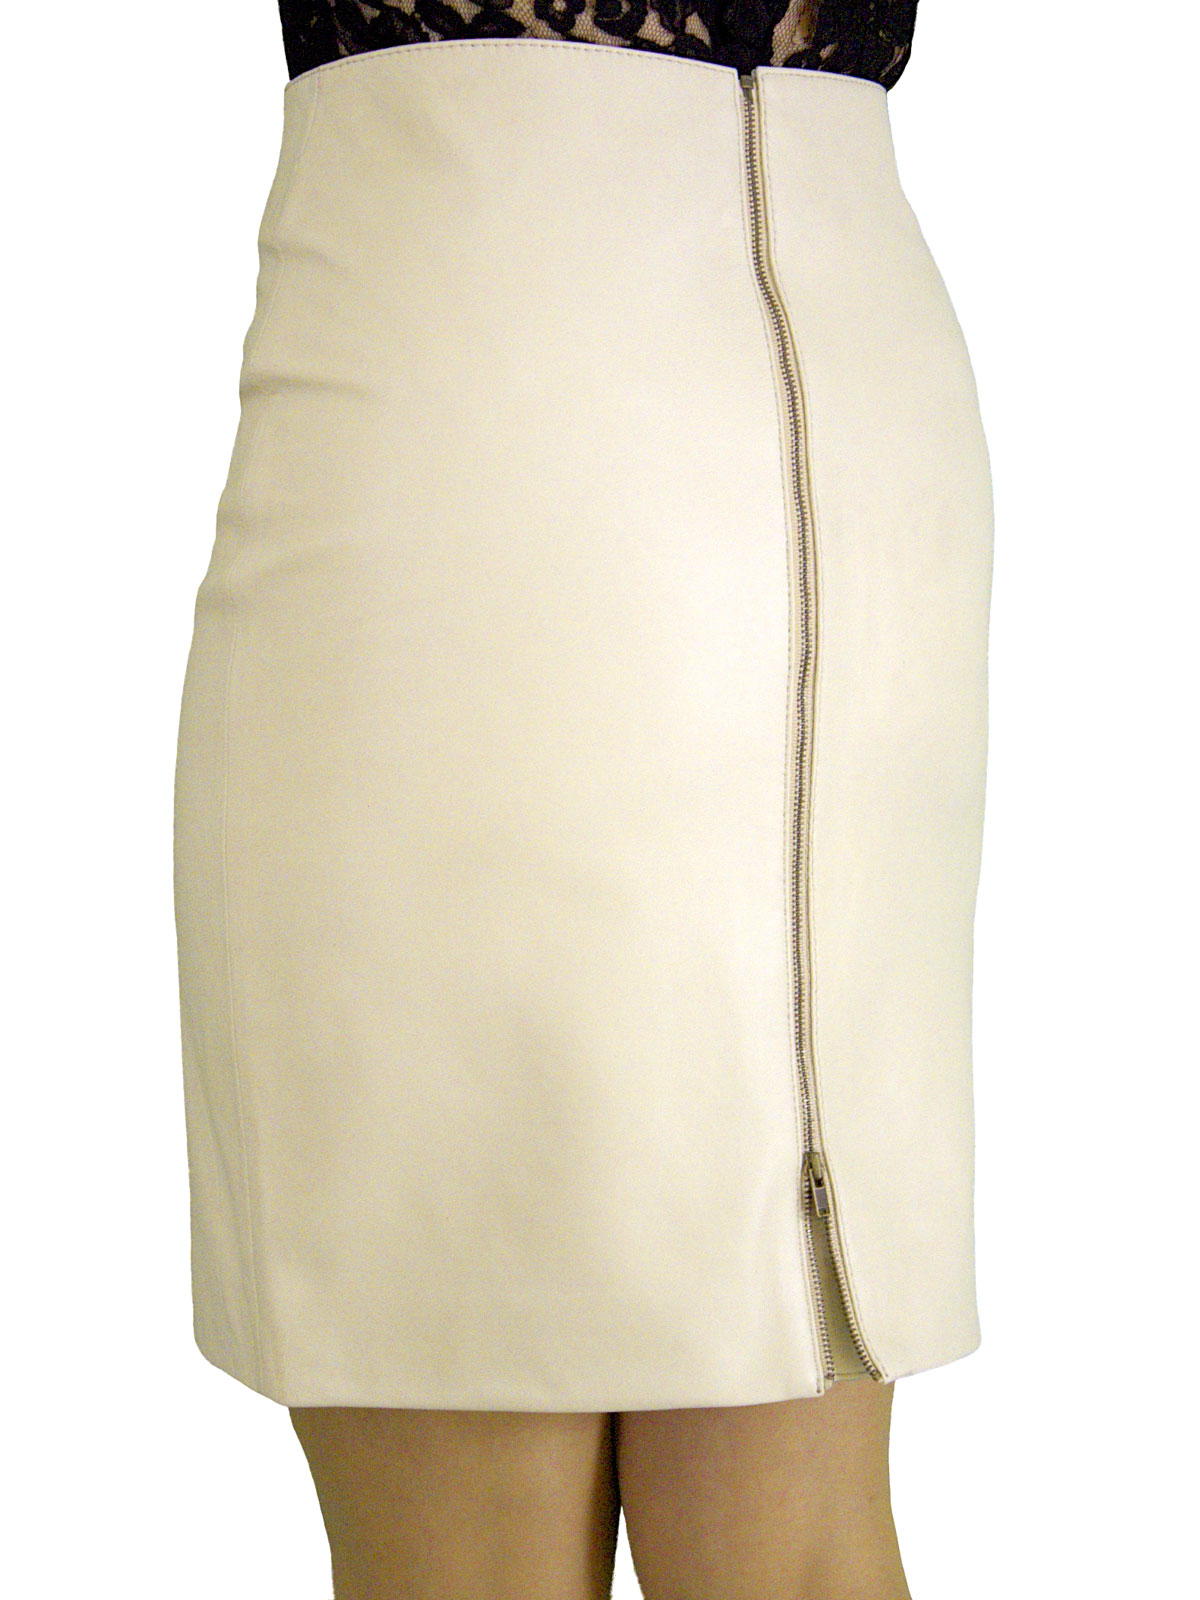 Cream Leather Skirt - Dress Ala